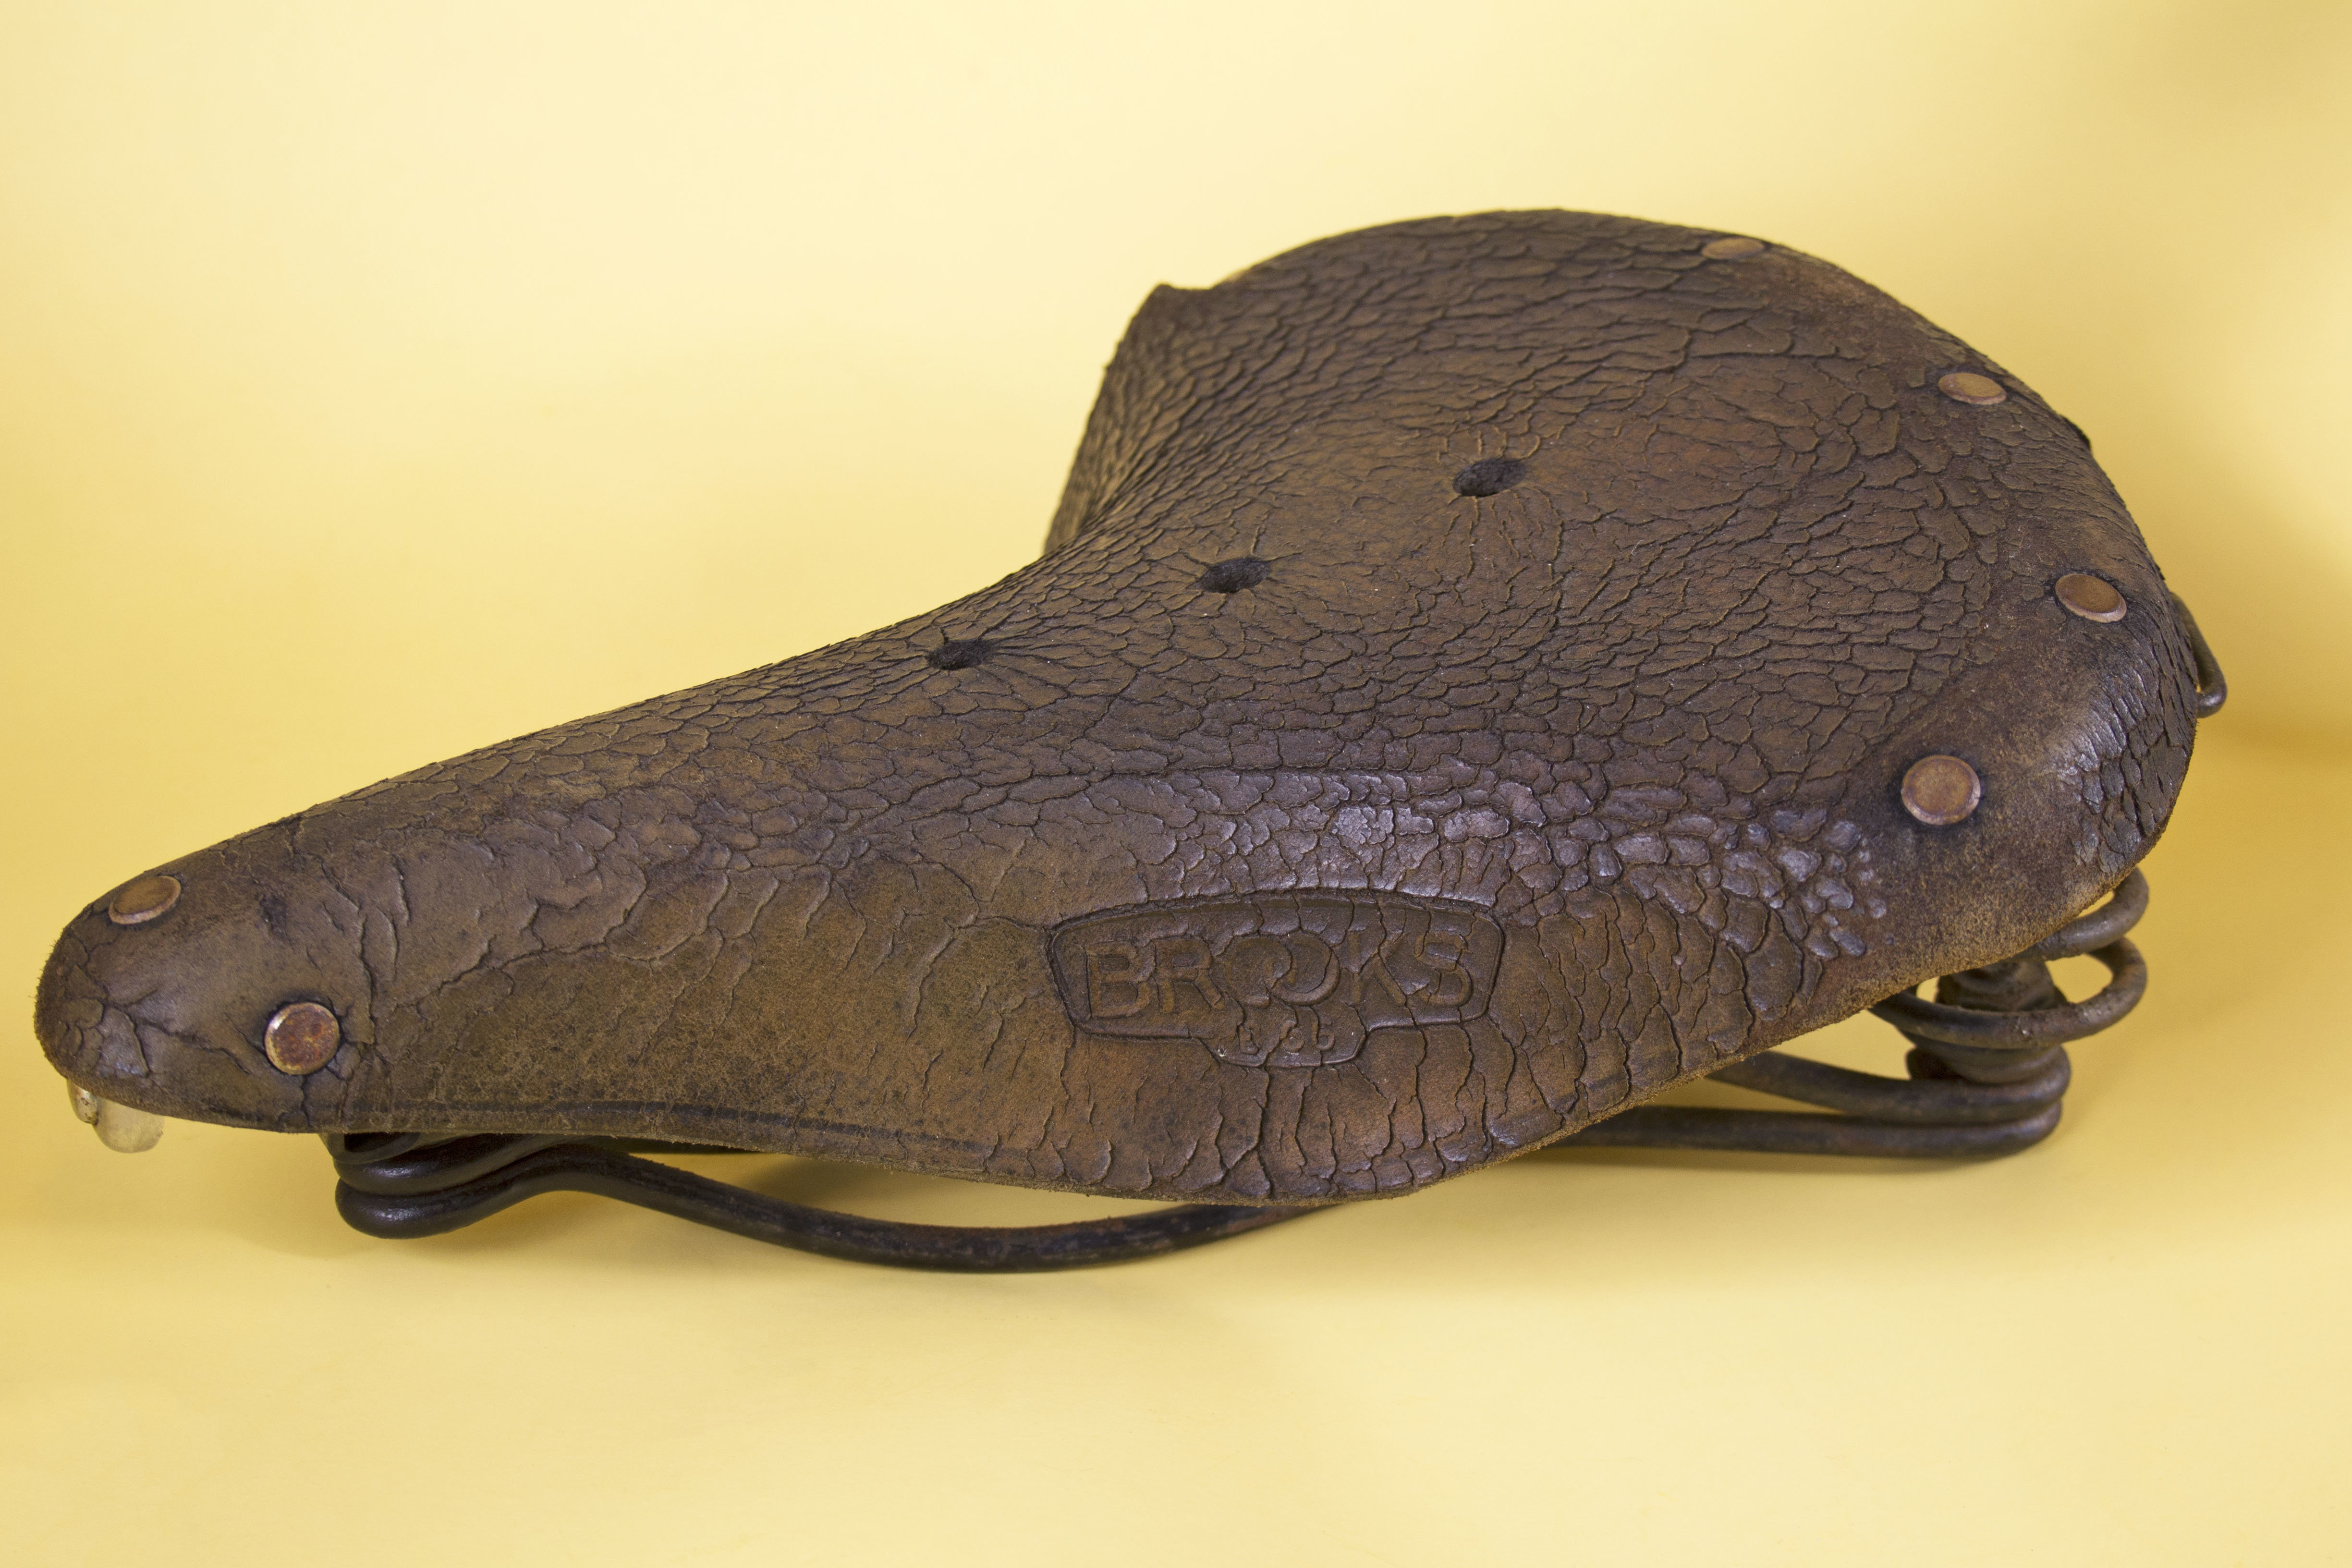 2dfa24d96f On the other hand, if neglected, a Brooks saddle might end up looking like  this: